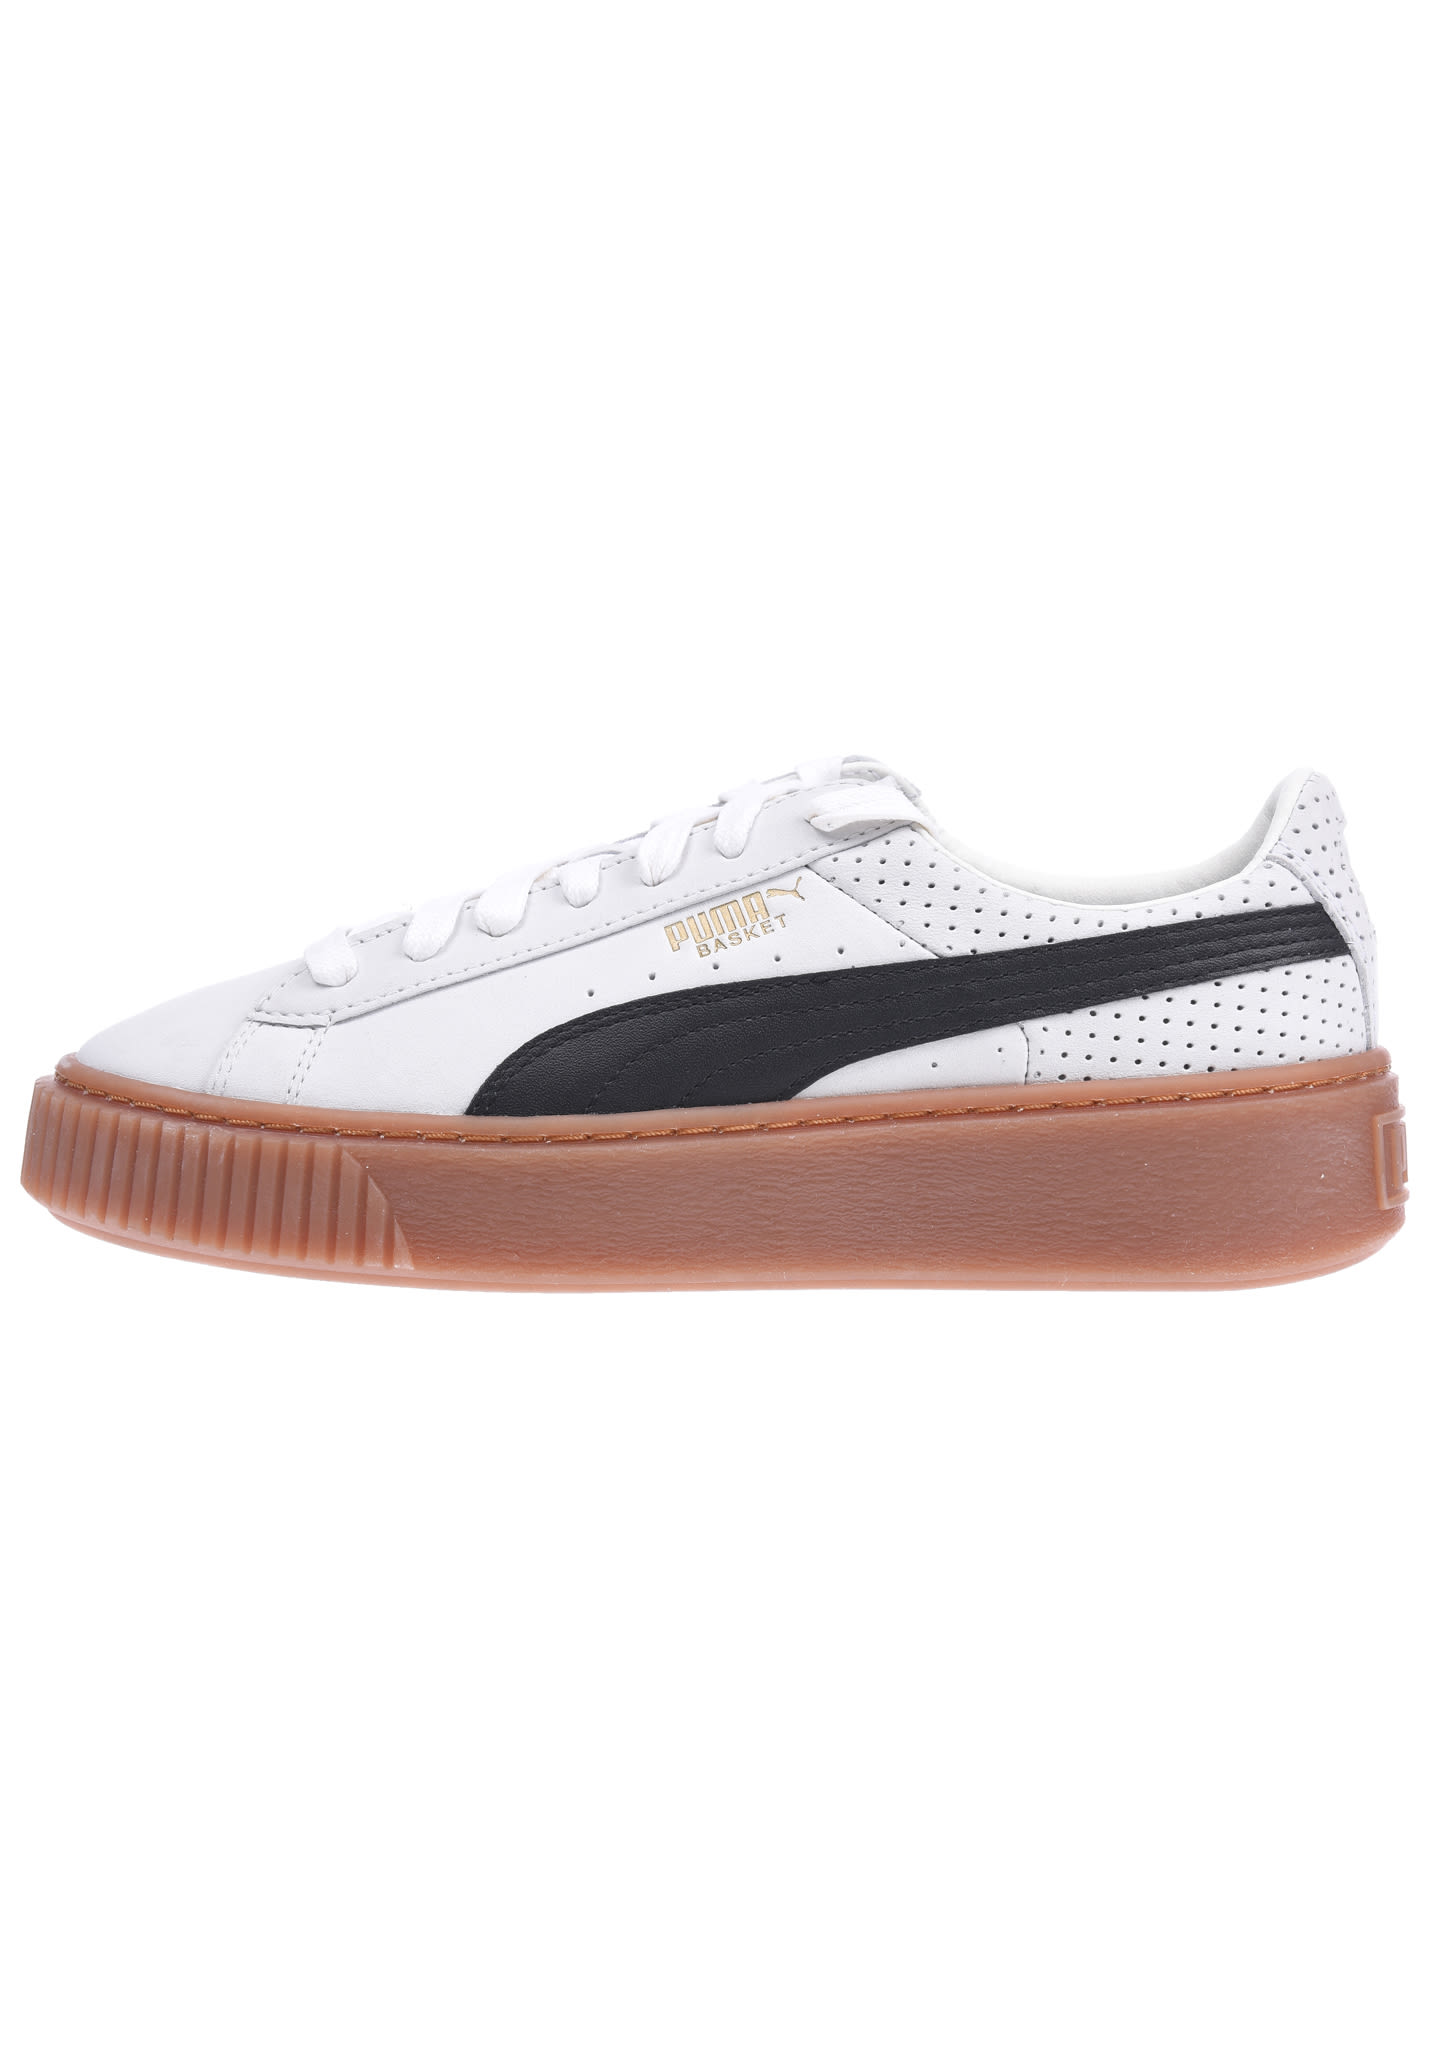 49050b5c64 Puma Basket Platform Perf Gum - Sneakers for Women - Beige - Planet Sports